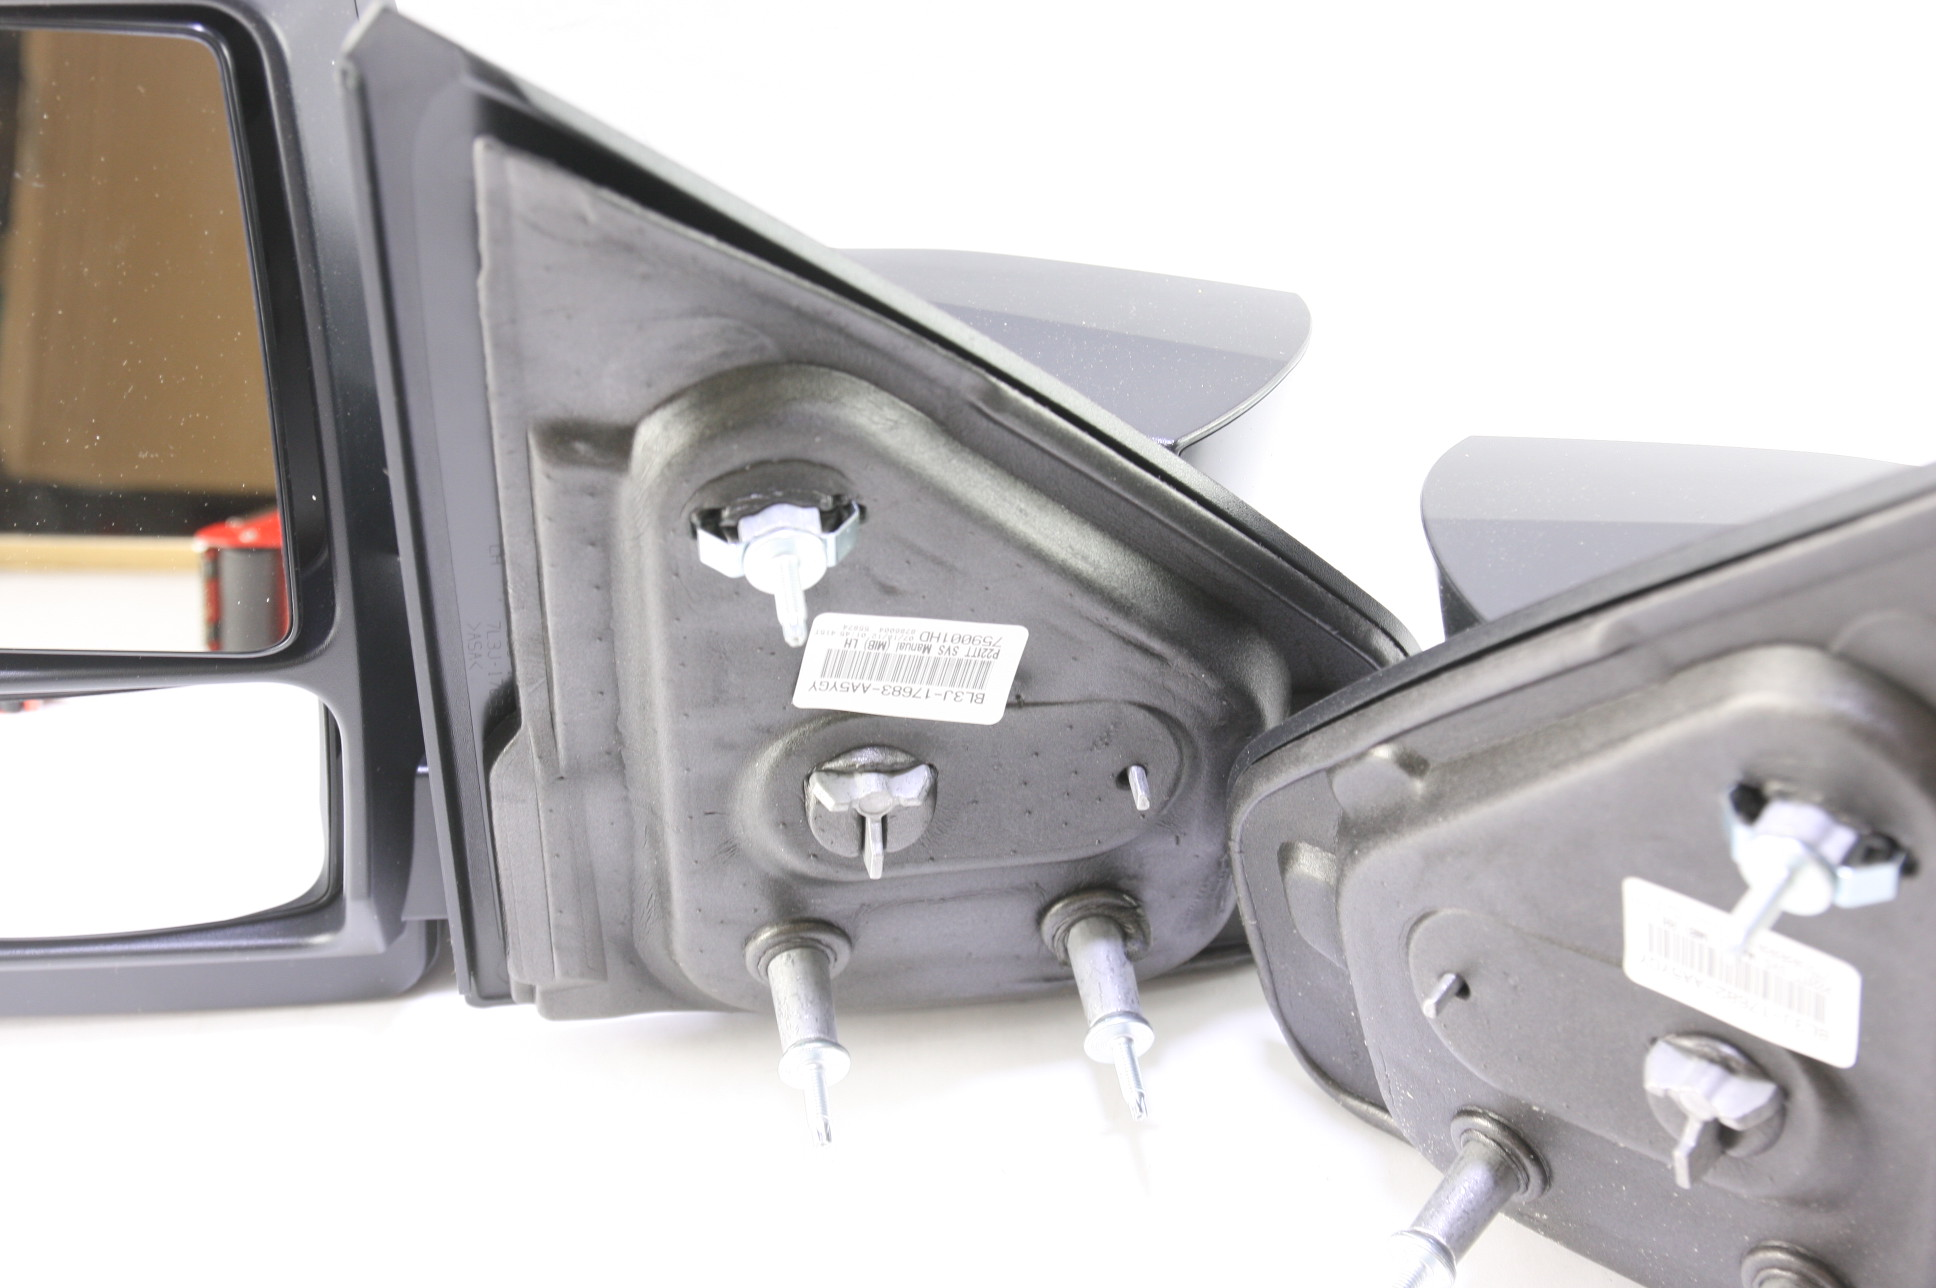 **New OEM DL3Z17696AA Ford 05-14 F-150 Manual Telescopic Trailer Tow Mirrors Set - image 6